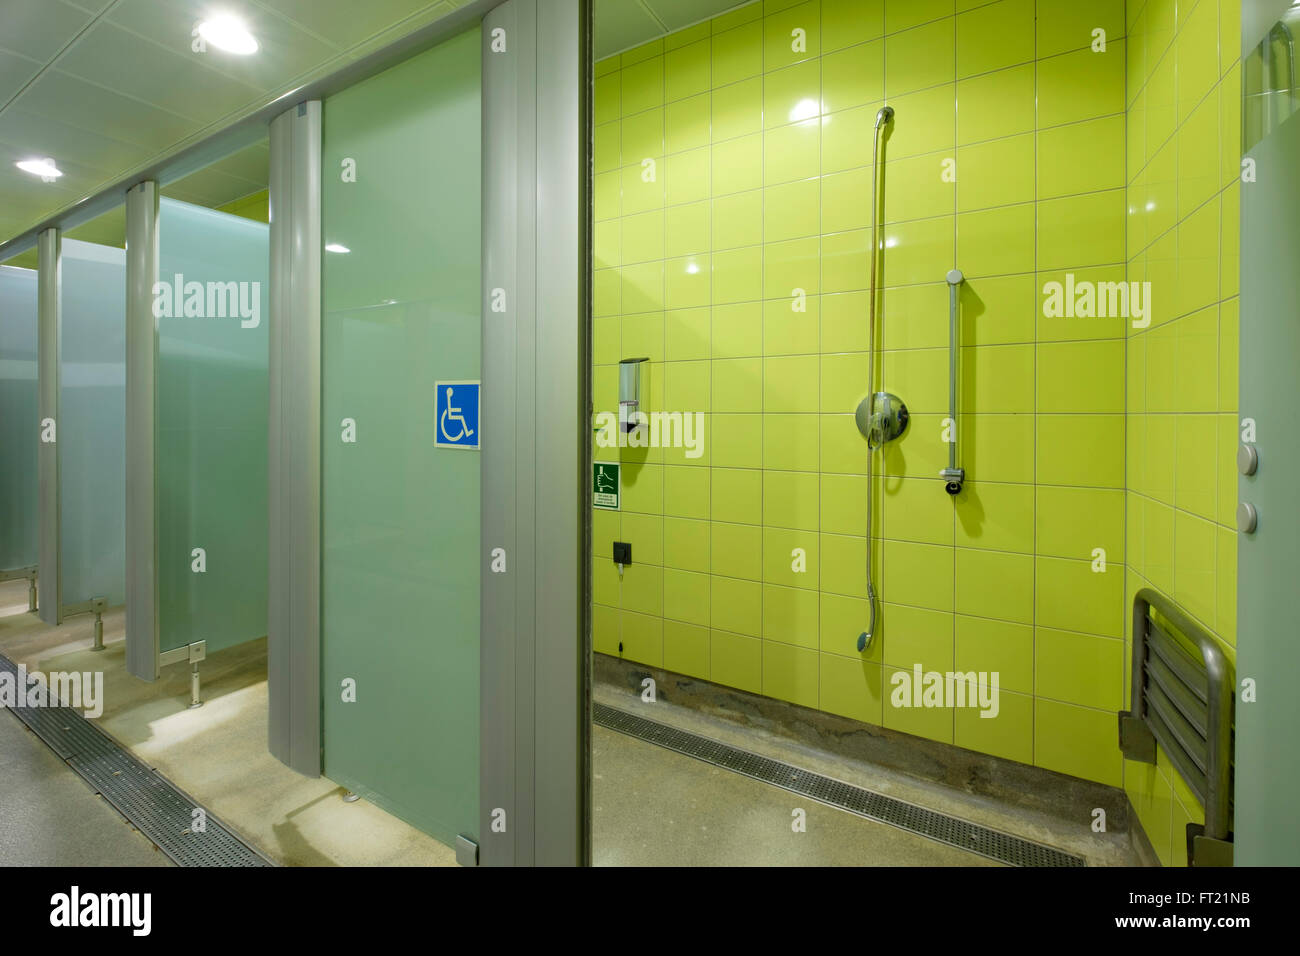 Disabled shower cabin at the gym - Stock Image